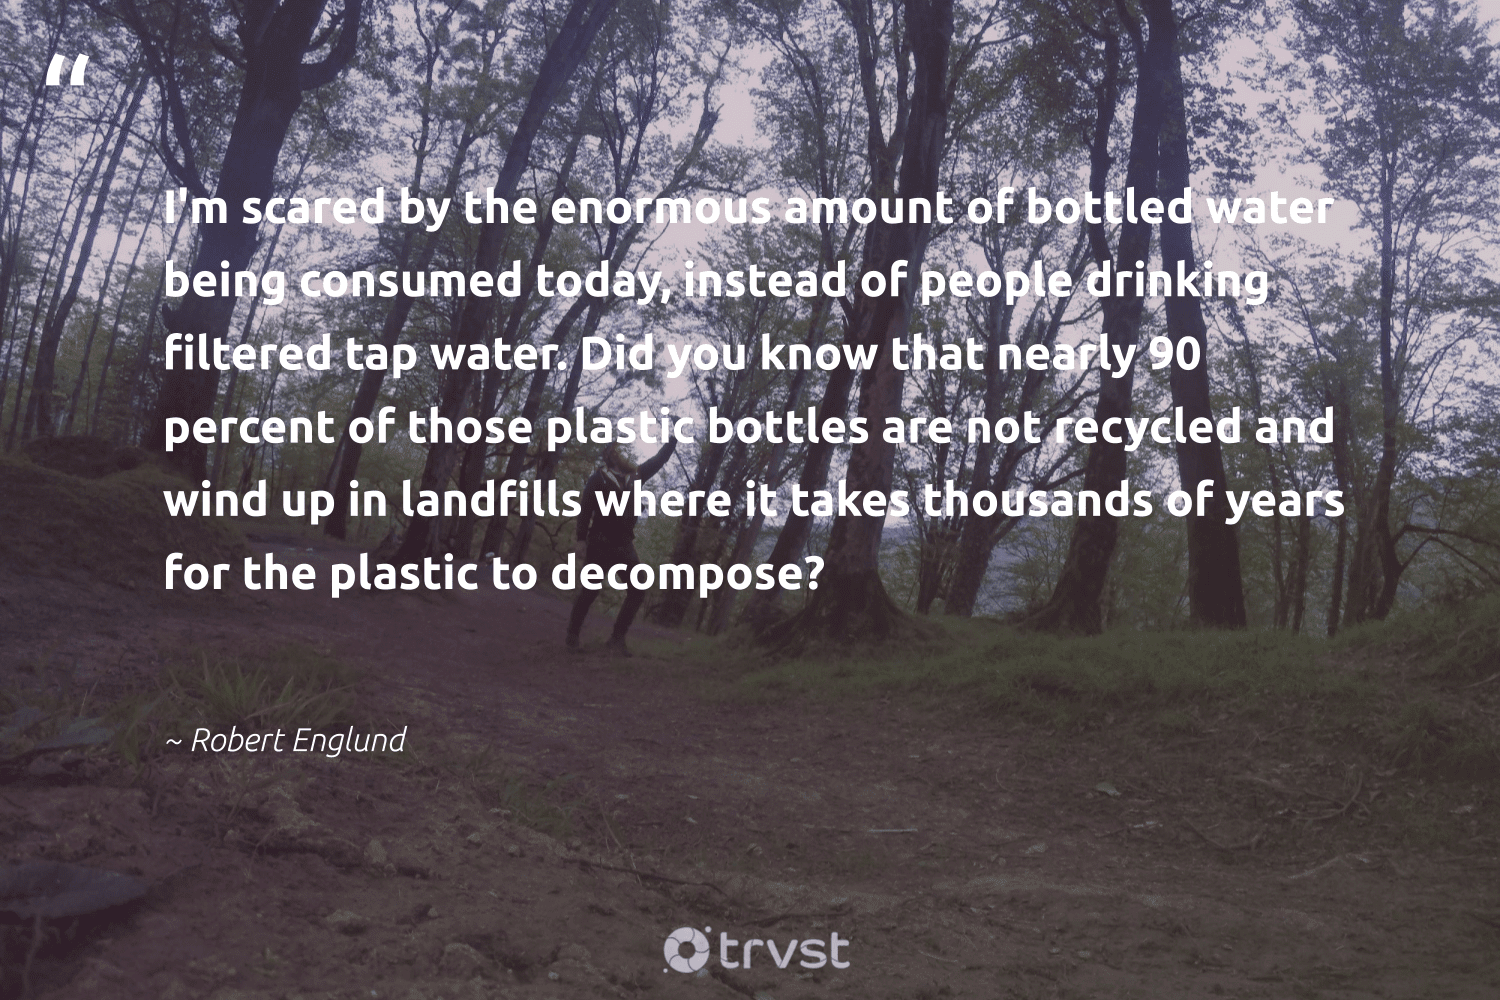 """""""I'm scared by the enormous amount of bottled water being consumed today, instead of people drinking filtered tap water. Did you know that nearly 90 percent of those plastic bottles are not recycled and wind up in landfills where it takes thousands of years for the plastic to decompose?""""  - Robert Englund #trvst #quotes #plasticwaste #landfills #plastic #recycled #water #breakfreefromplastic #wastenotwantnot #savetheplanet #dogood #ecoconscious"""